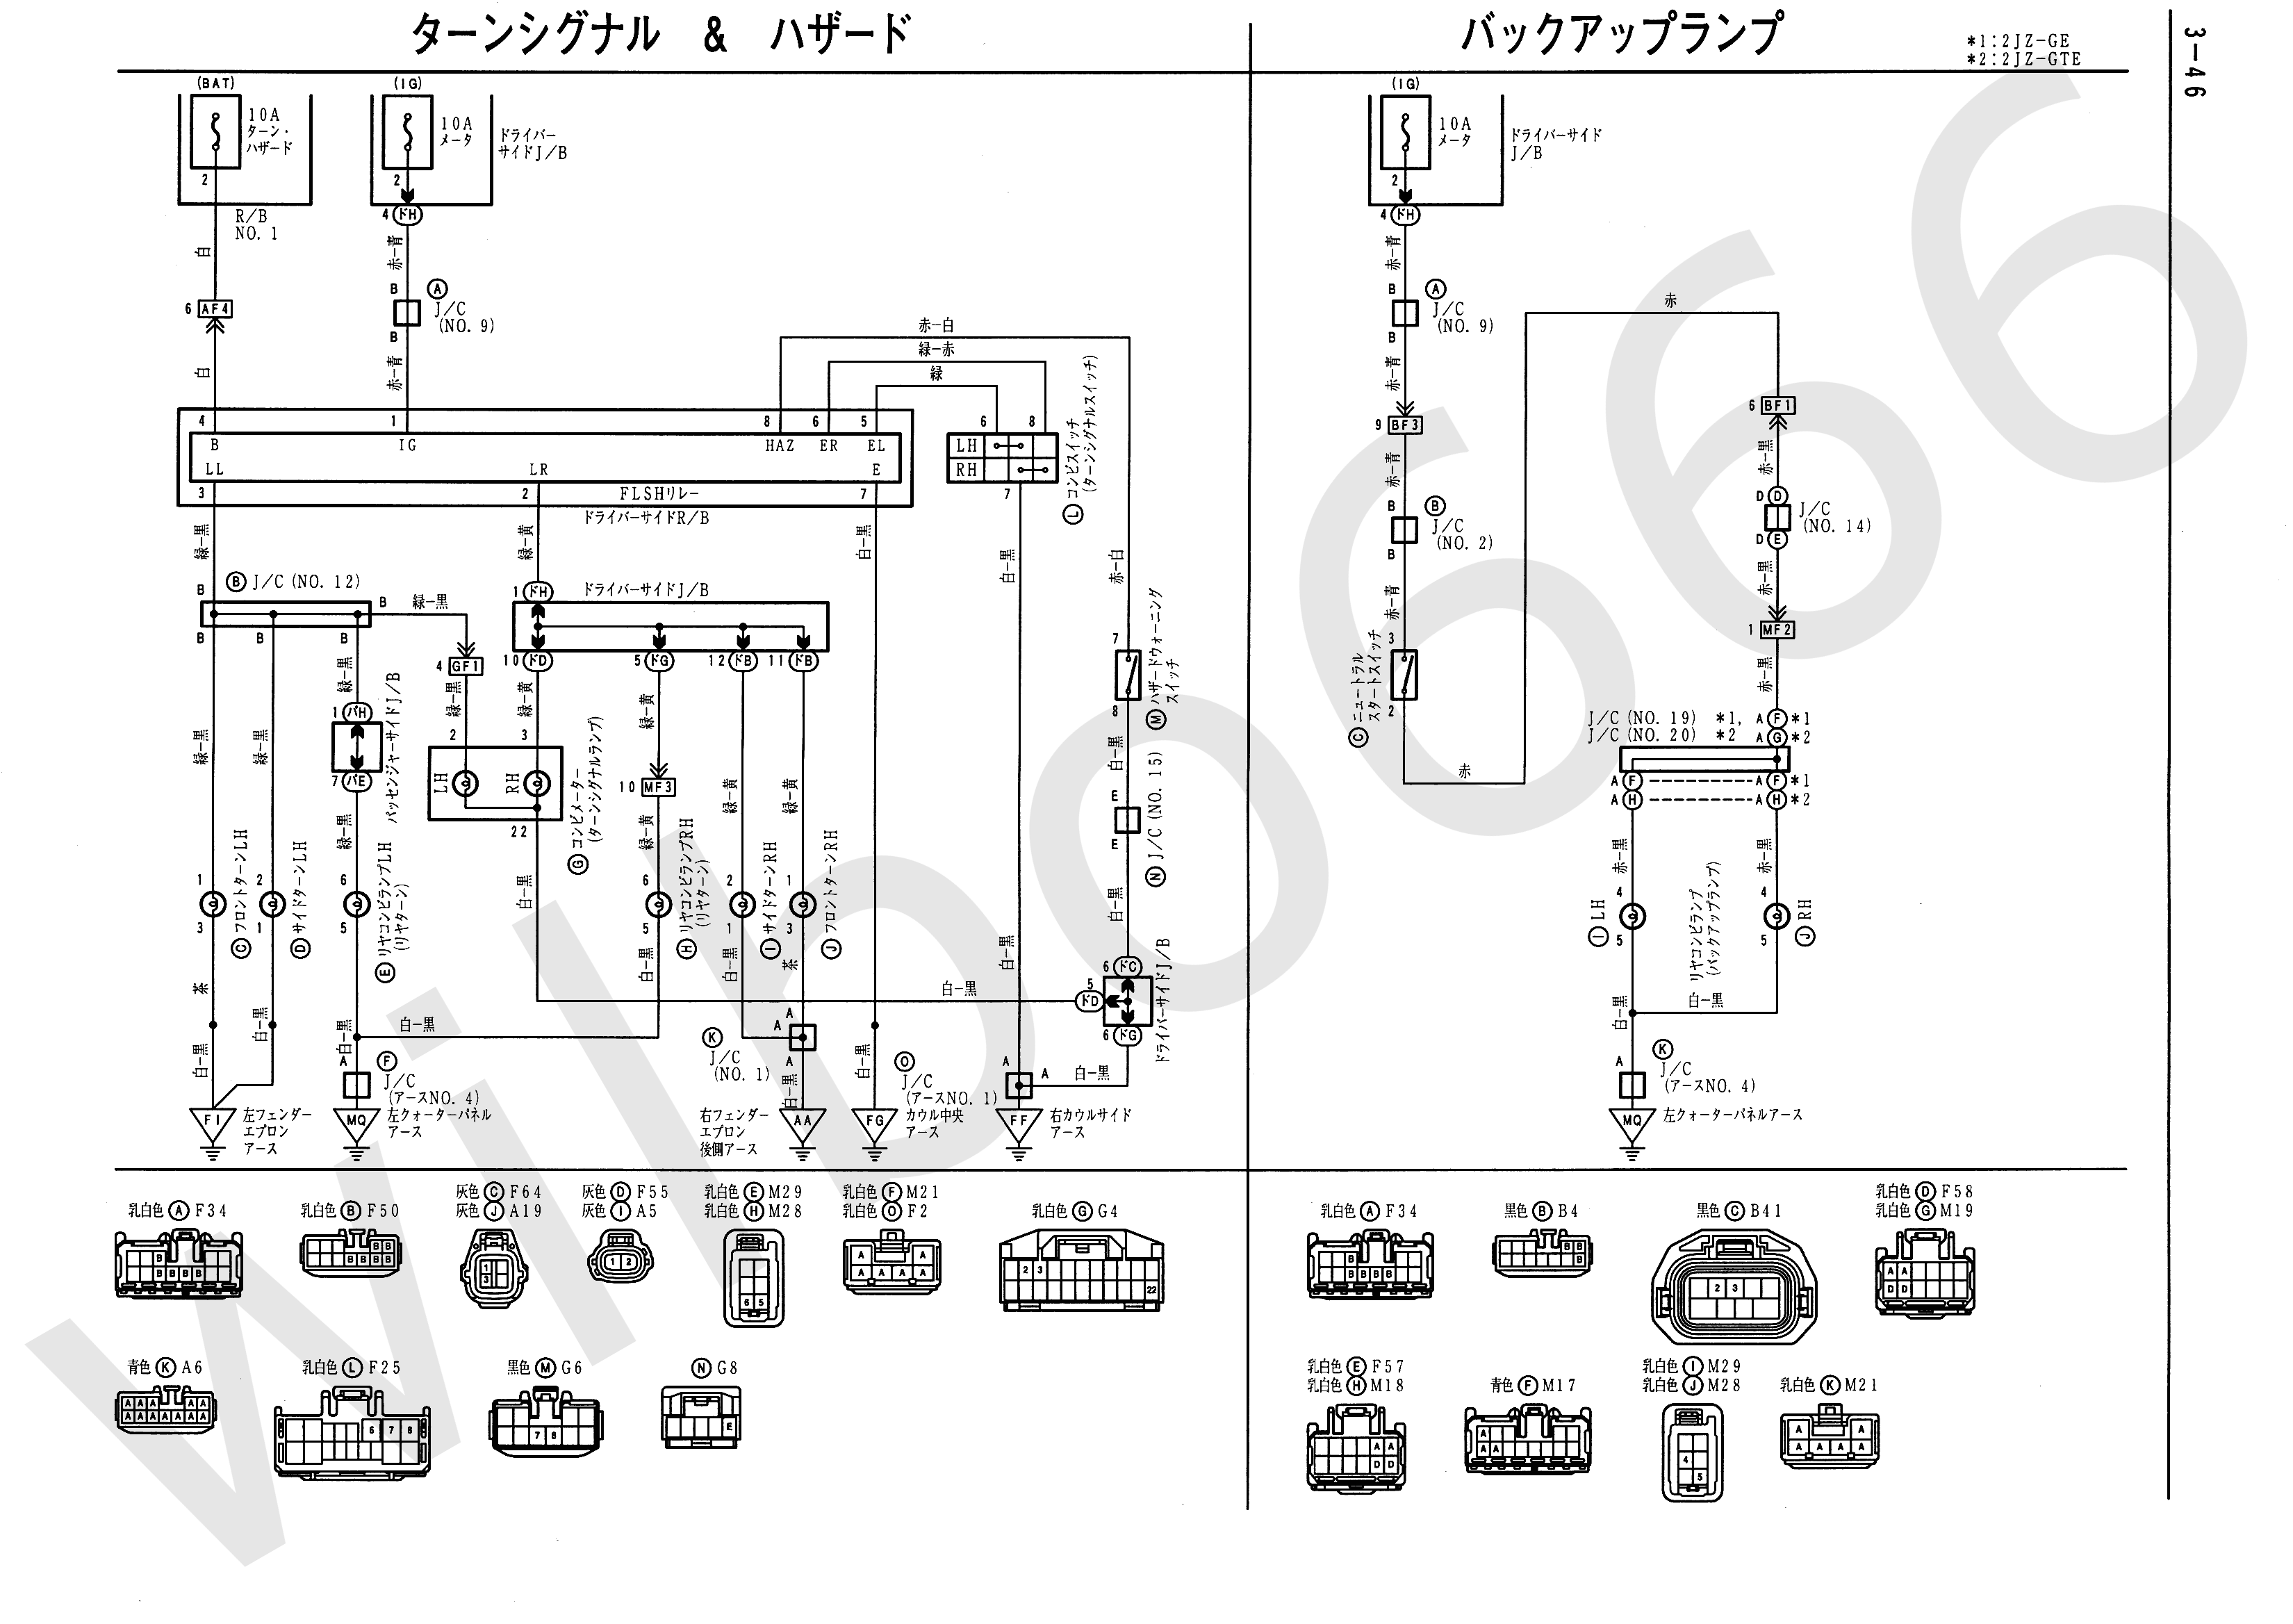 2jz Wiring Diagram Pdf 22 Images Diagrams Electrical Books Jzs161 6748505 3 46 Wilbo666 Gte Vvti Aristo Engine